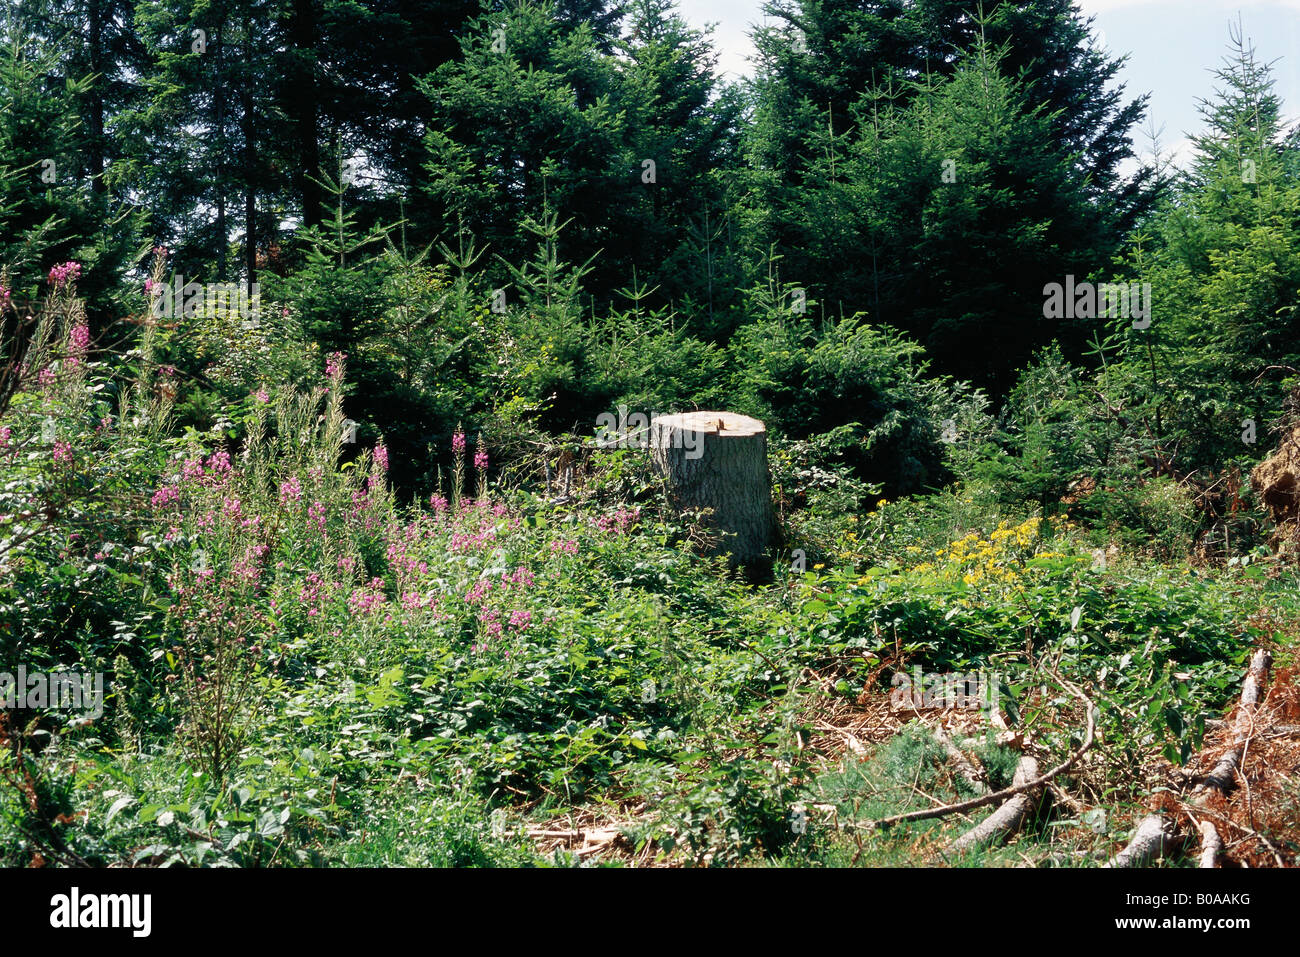 Tree stump in flowery meadow - Stock Image